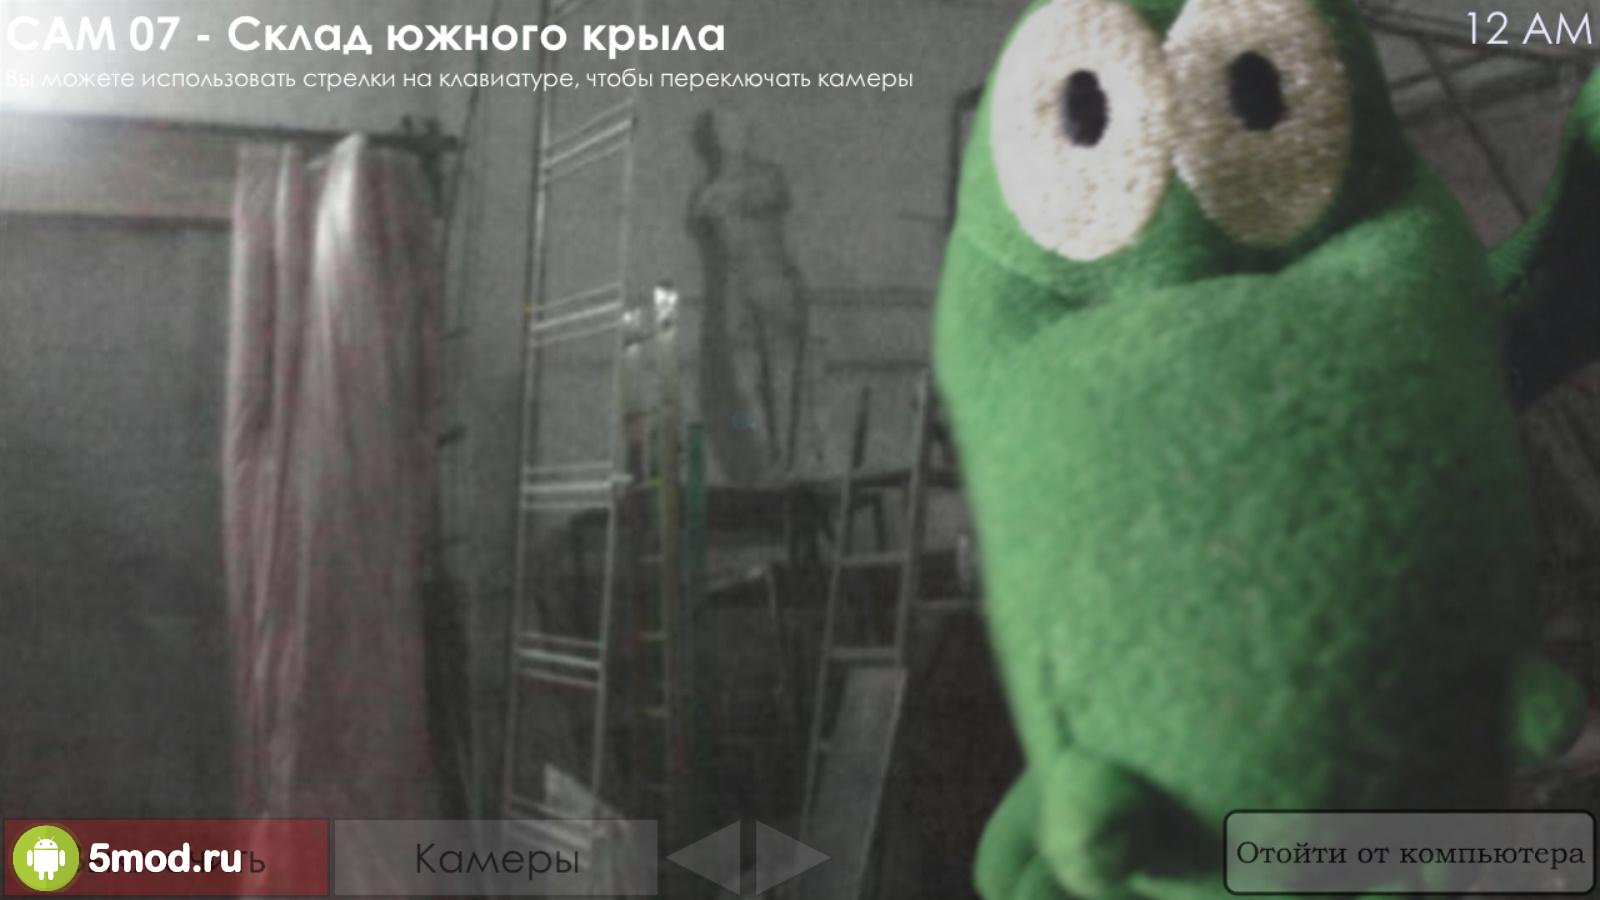 Five Nights with Froggy 2